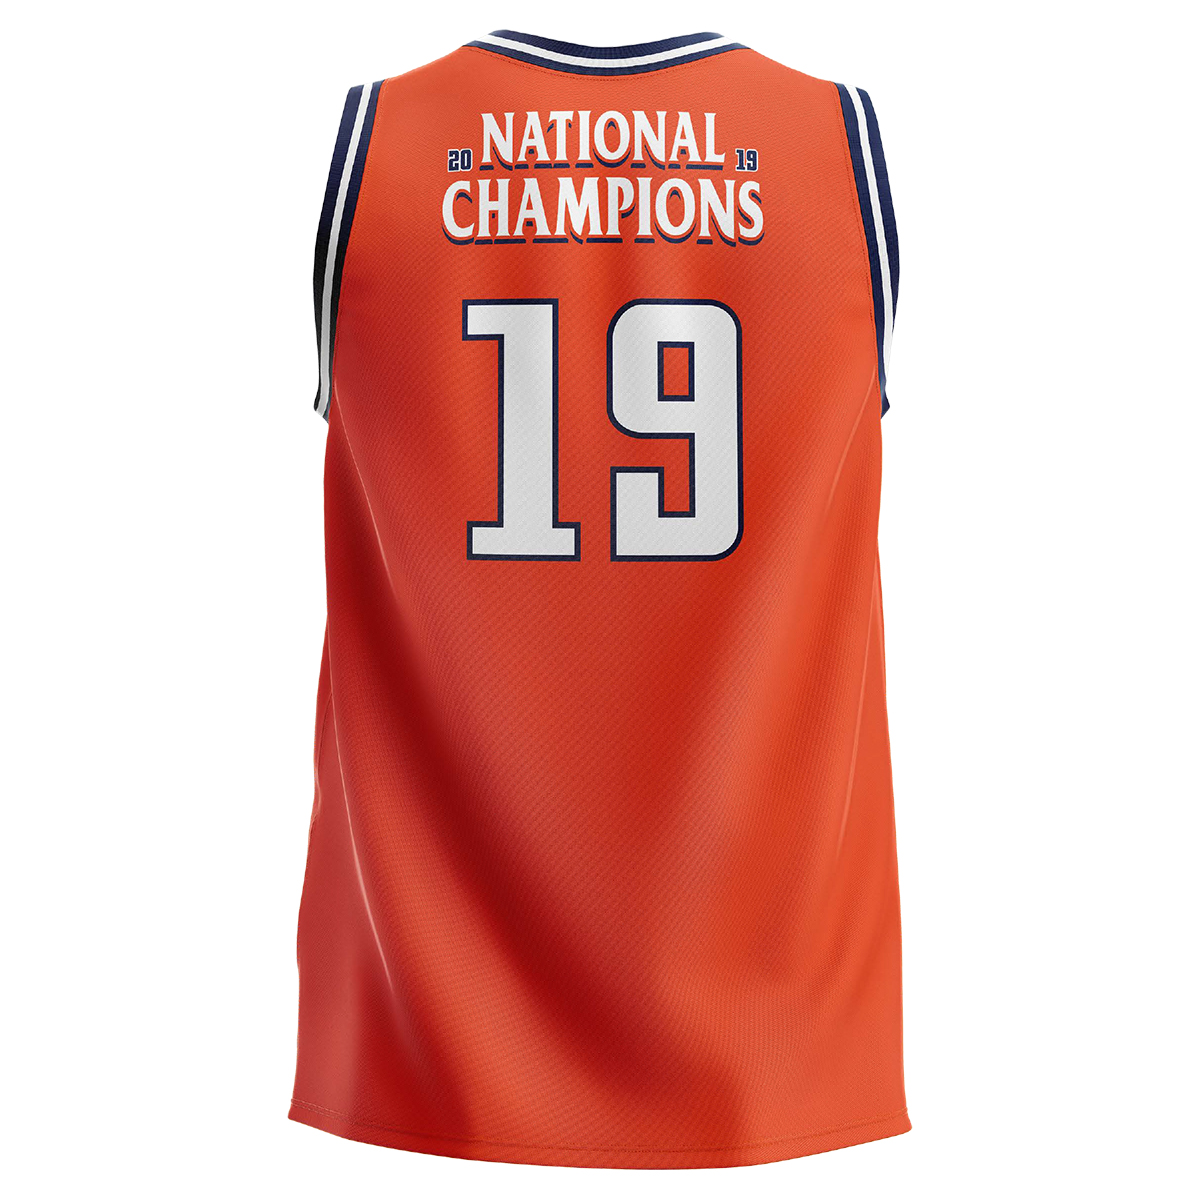 UVA 2019 National Champions Adult Orange Jersey